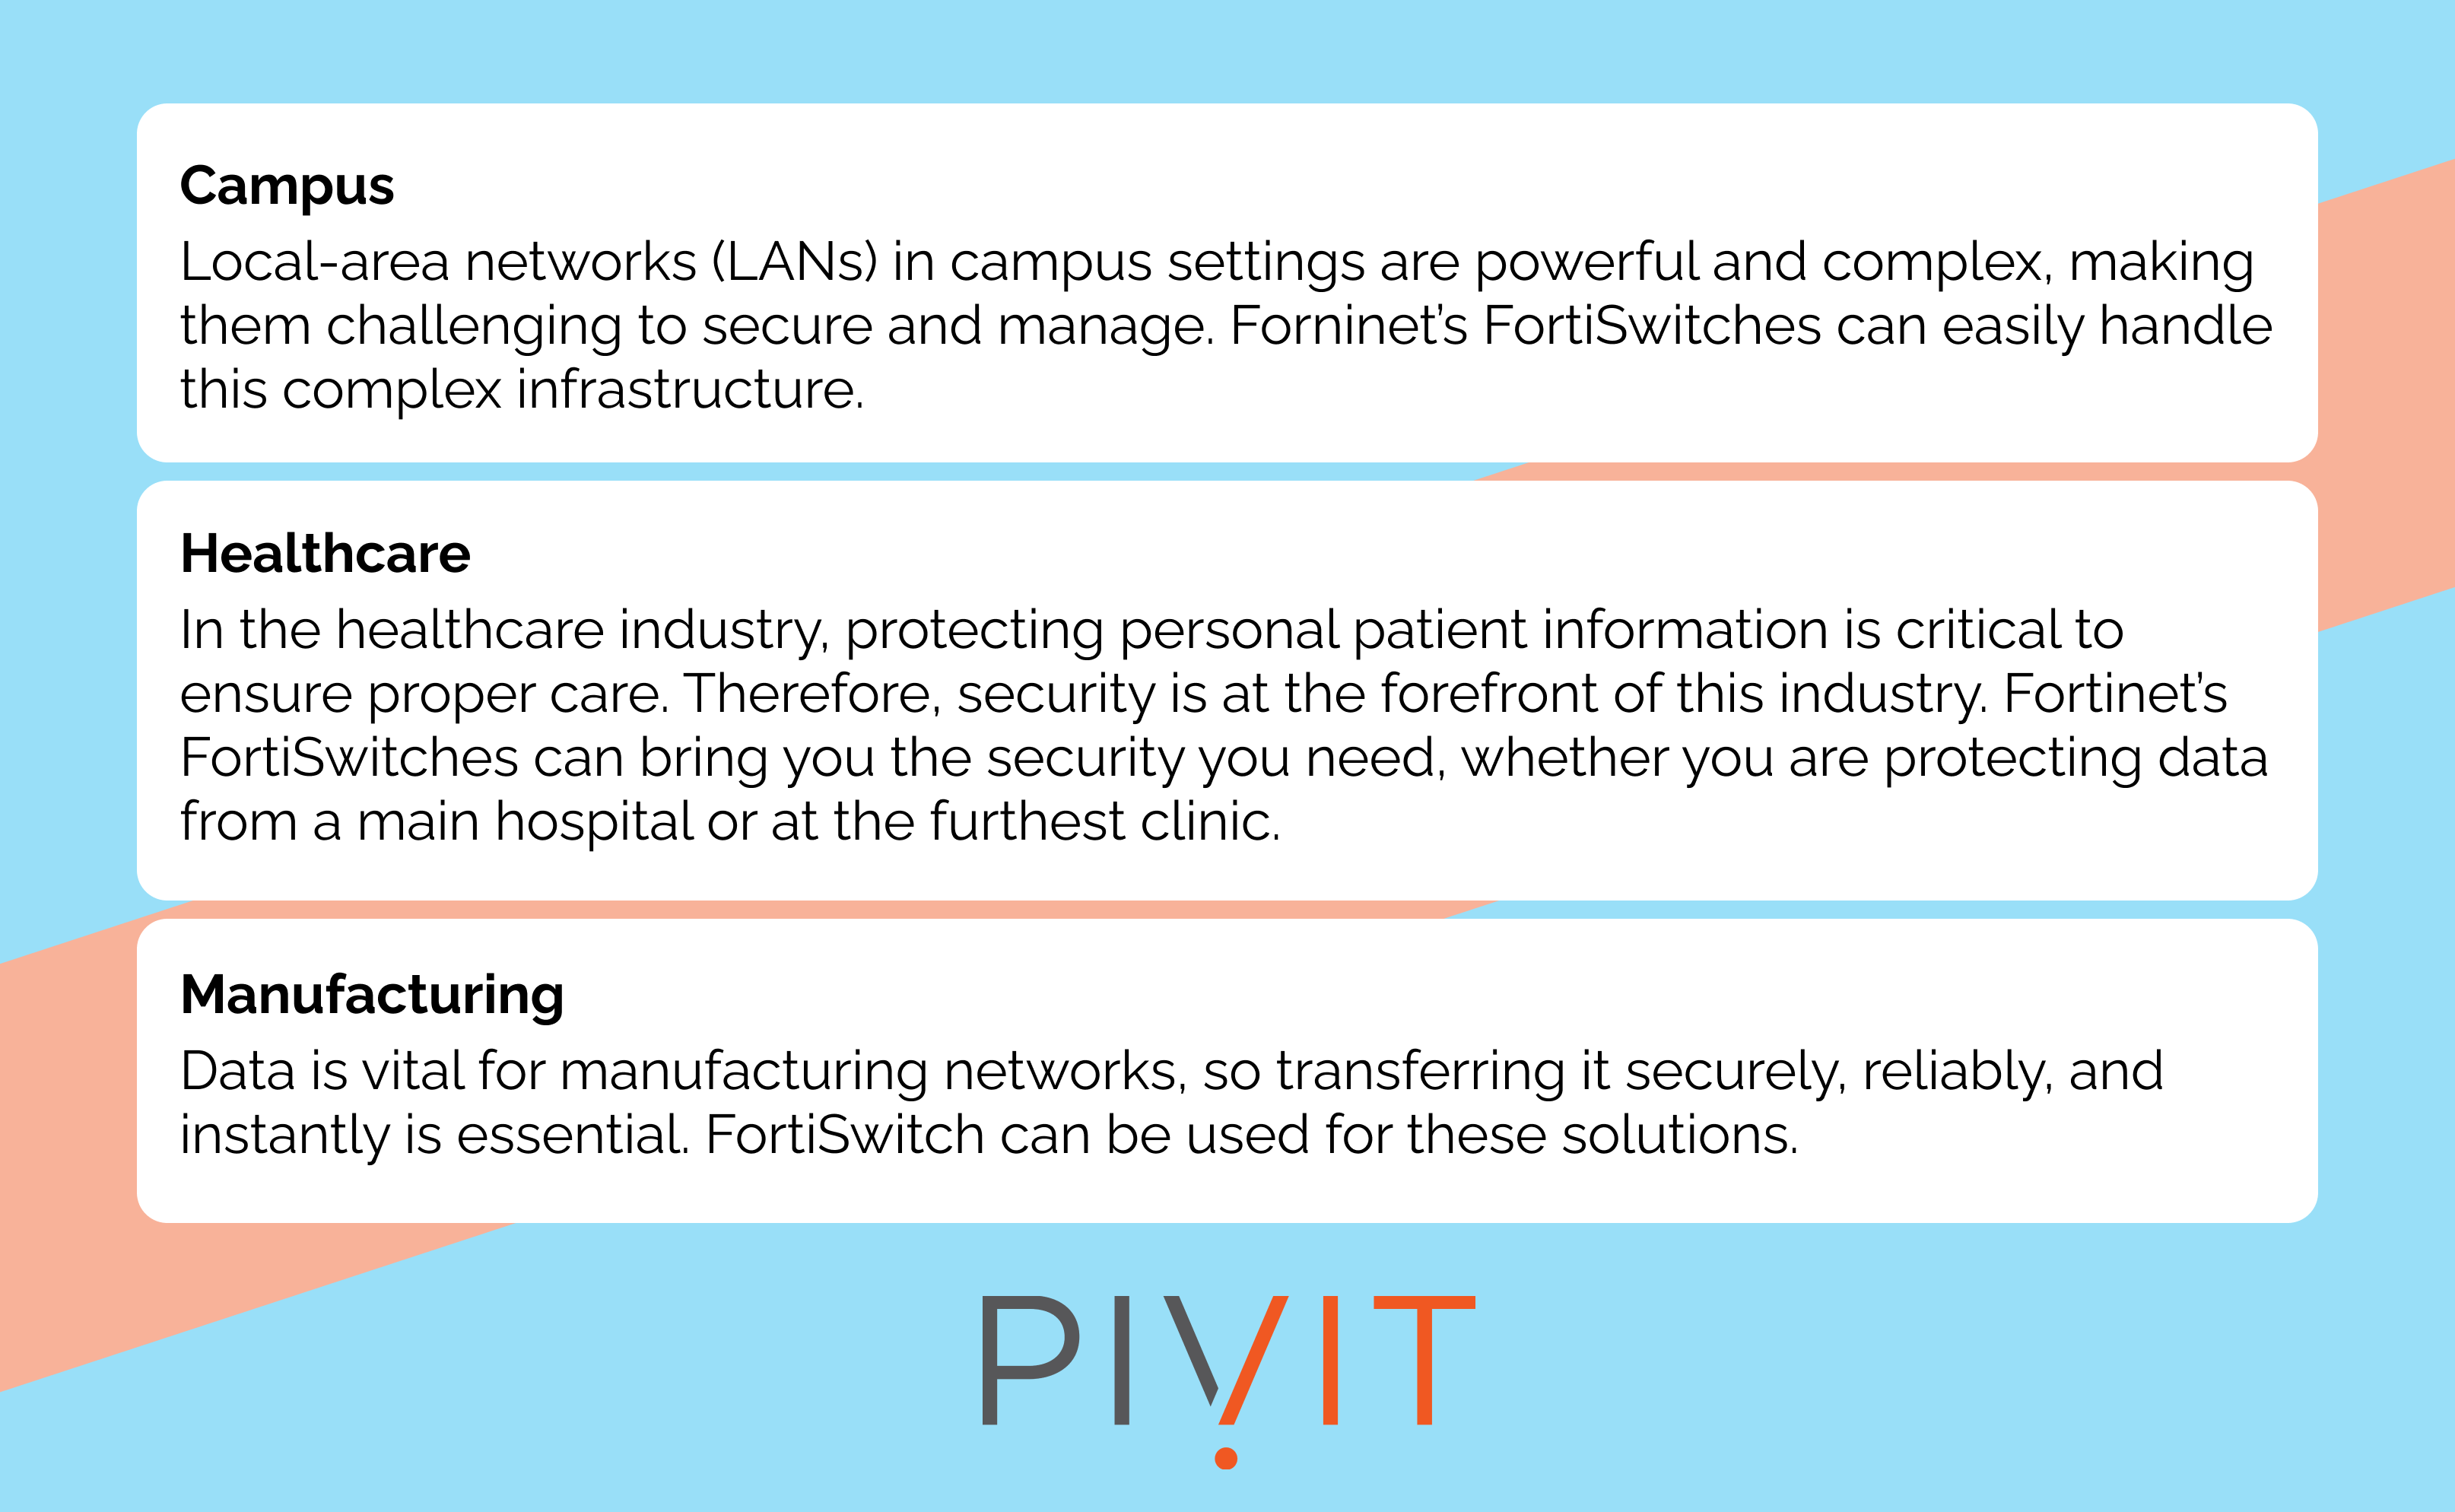 Fortinet FortiSwitch use cases such as campus, healthcare, and manufacturing